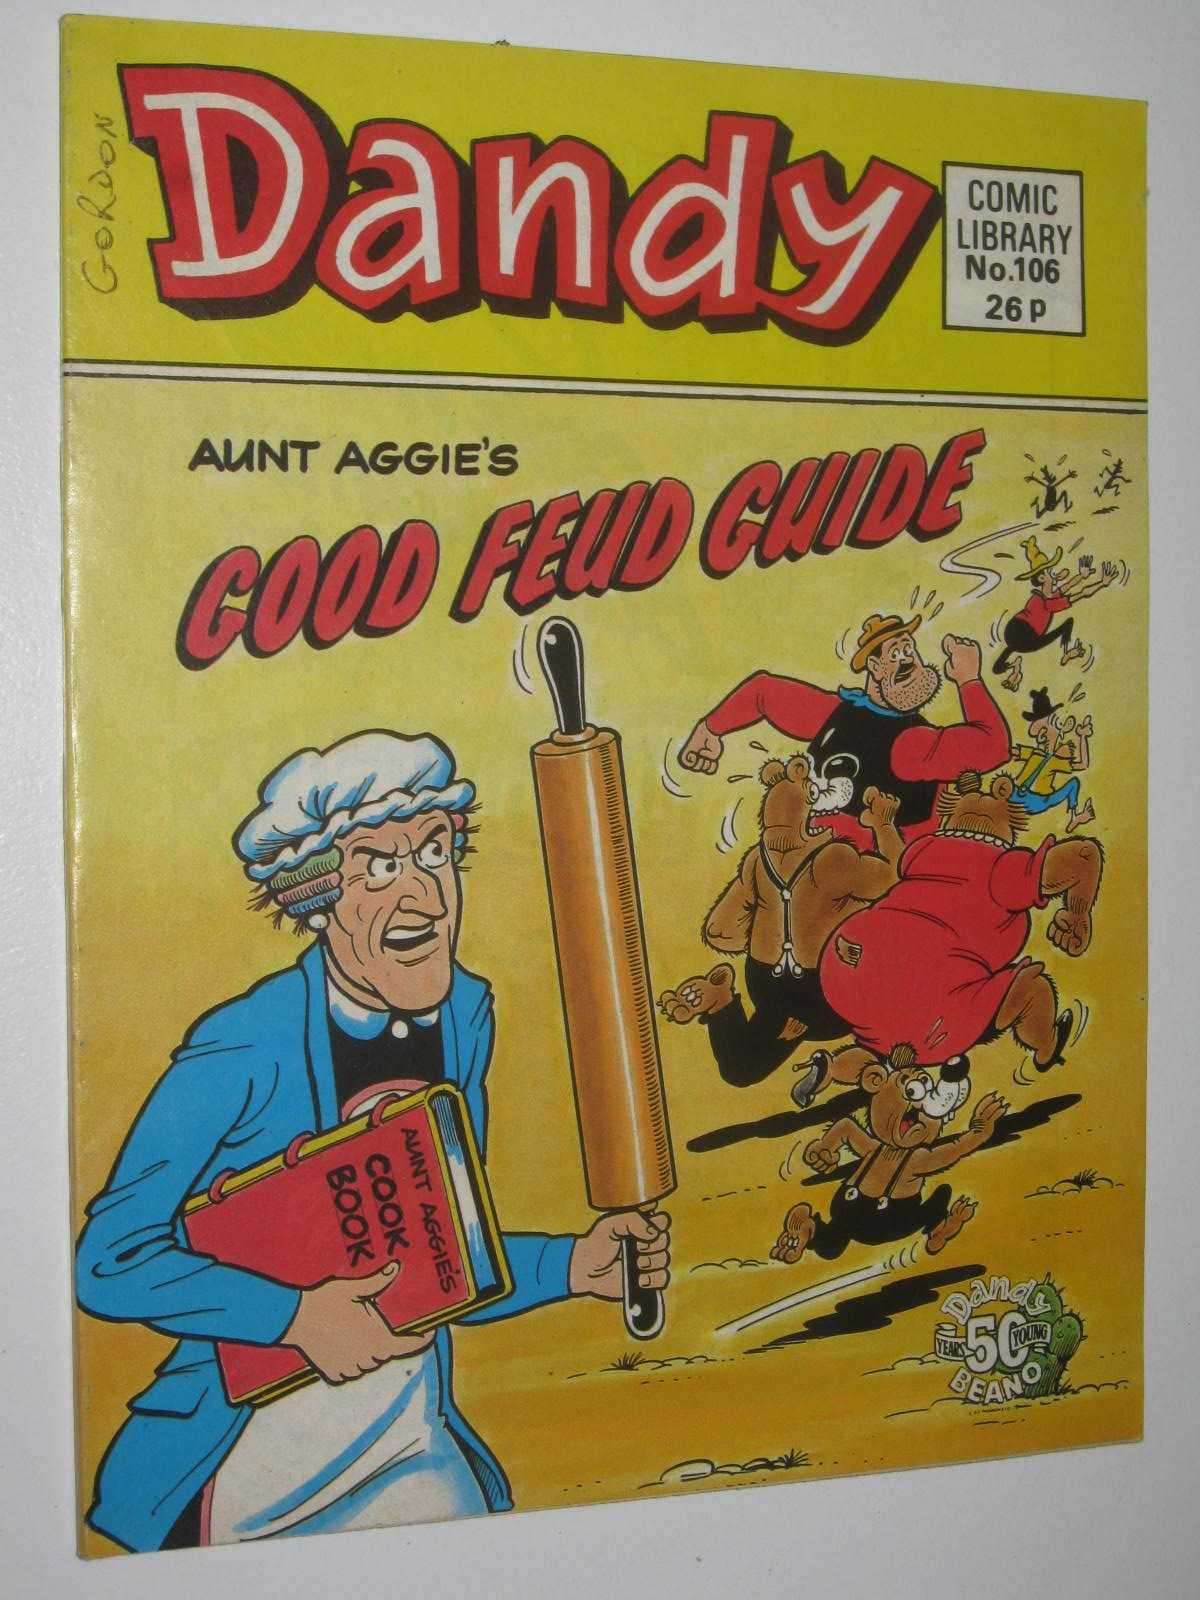 Image for Aunt Aggie's Good Feud Guide - Dandy Comic Library #106